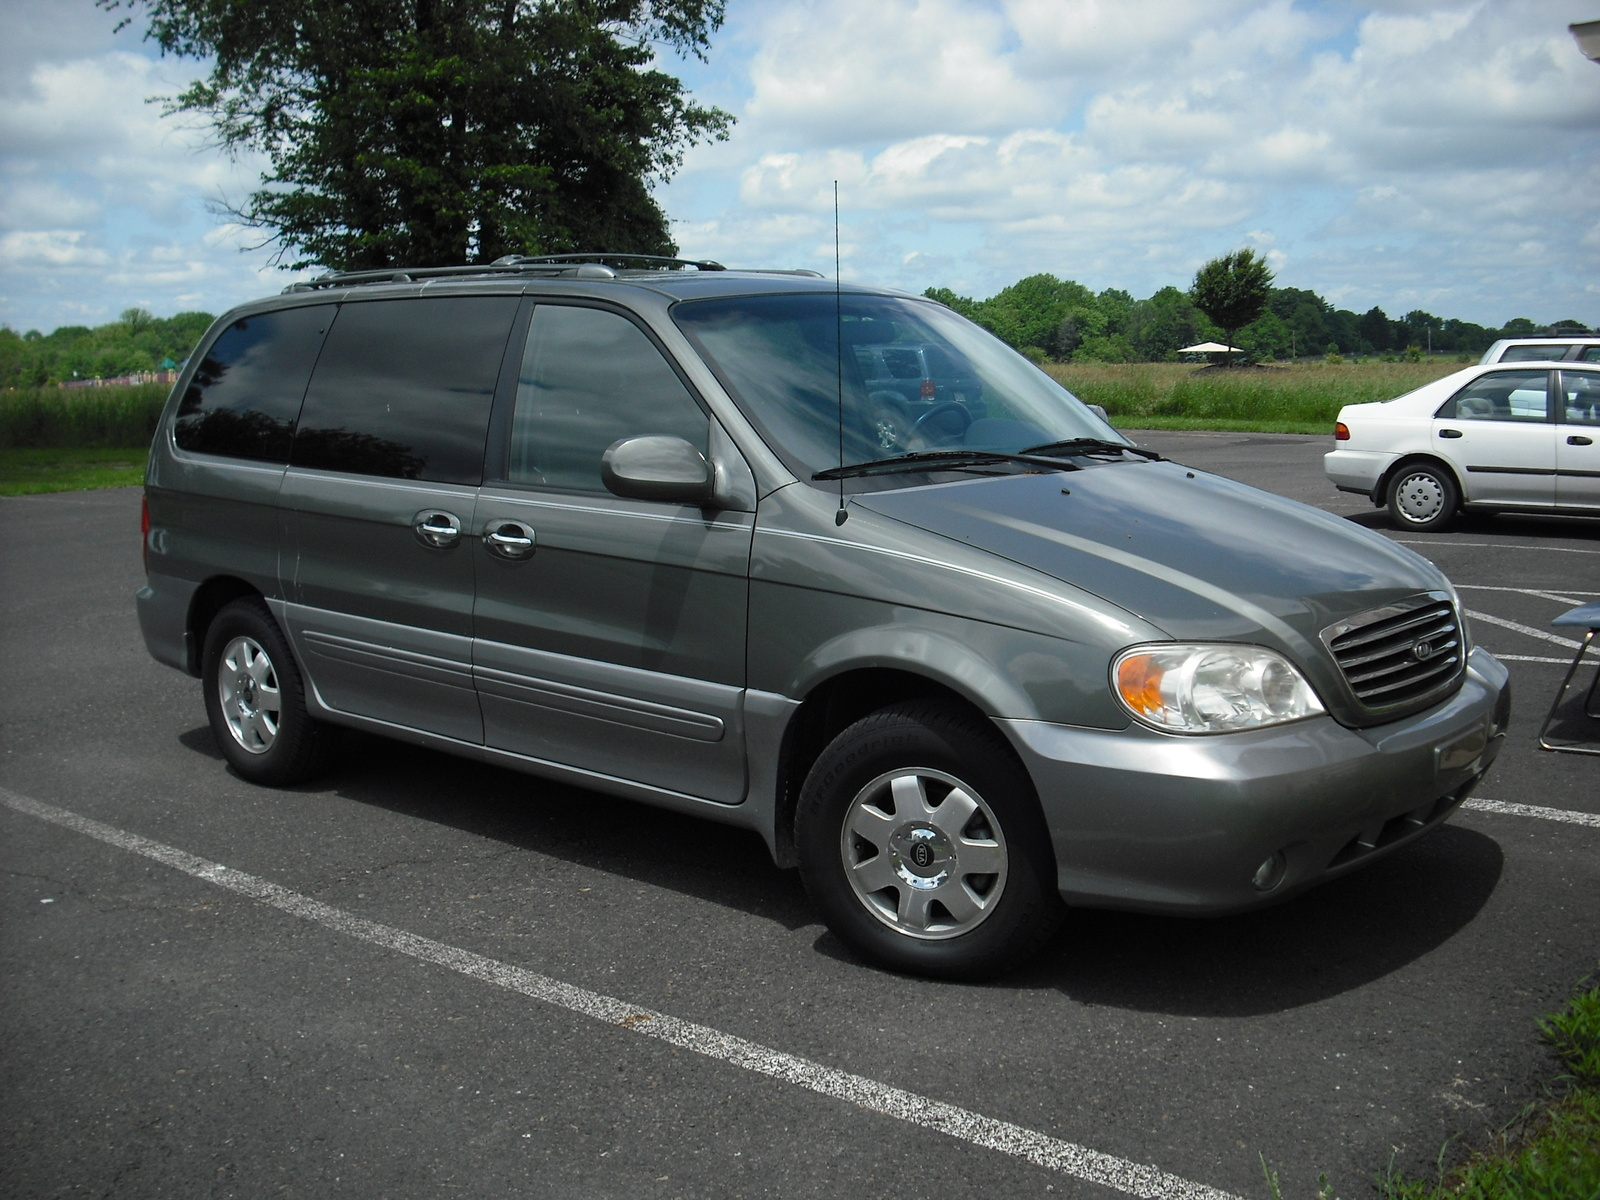 Picture of 2003 kia sedona ex exterior gallery_worthy